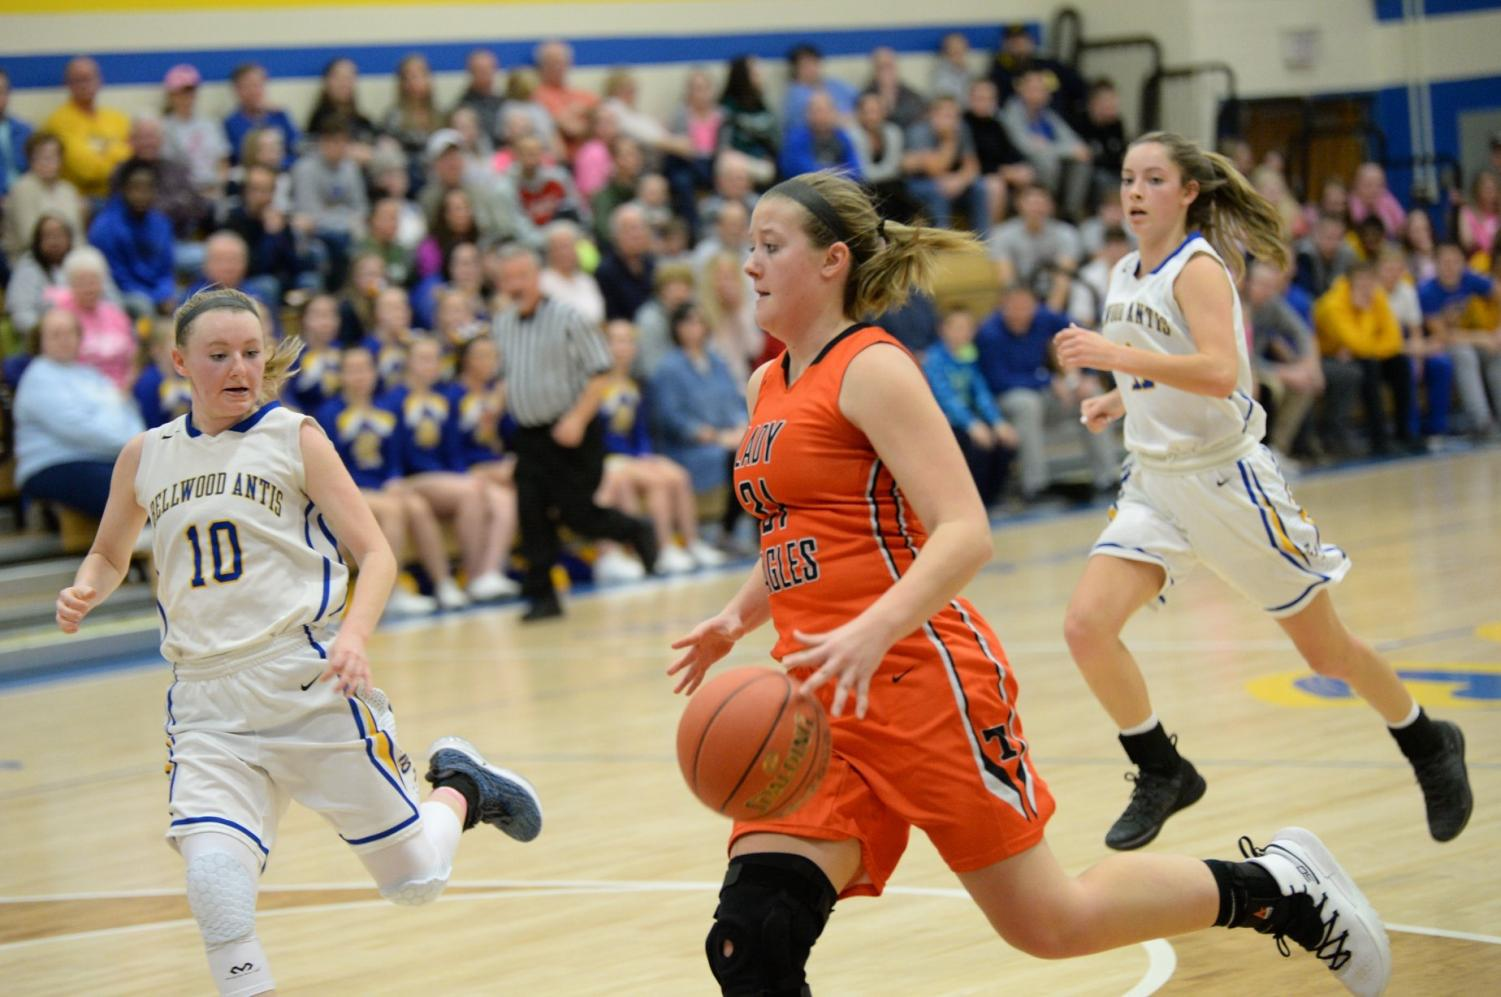 Senior Sydney Shaw, seen here vs. Bellwood, has been a leader this season for the girls basketball team